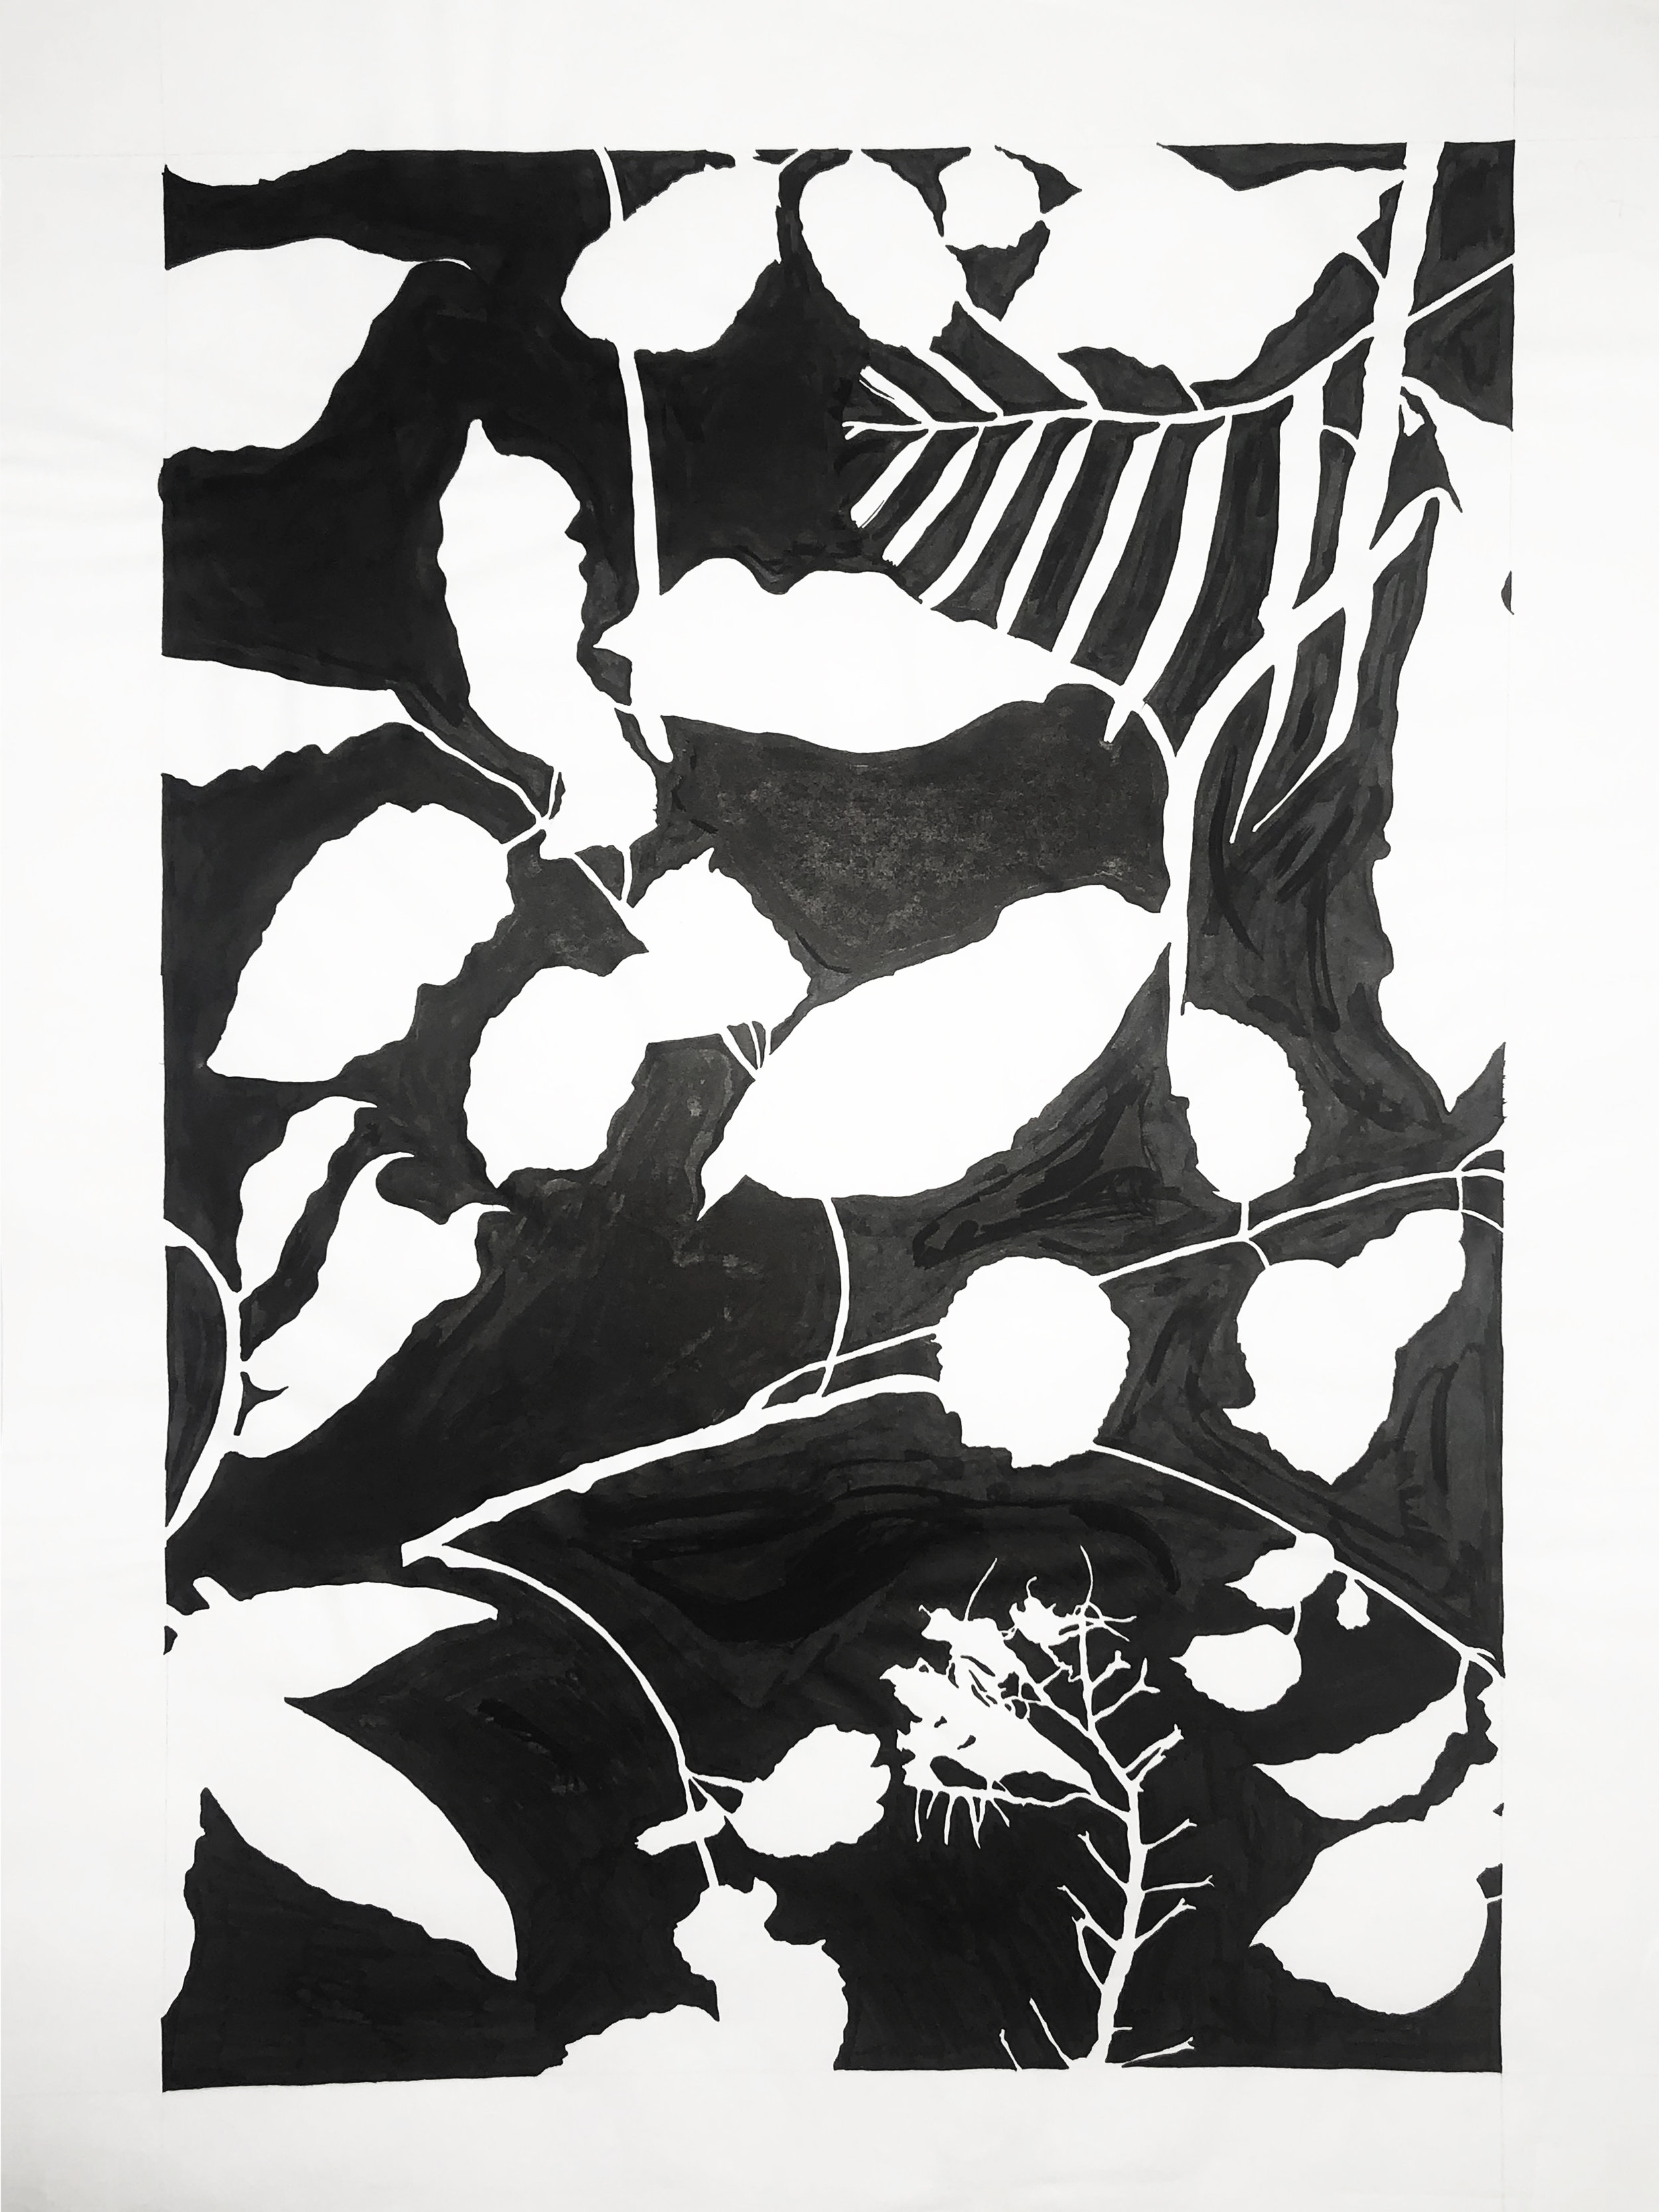 A study of fabric - Sumi InkA study of composition, shape, and form.